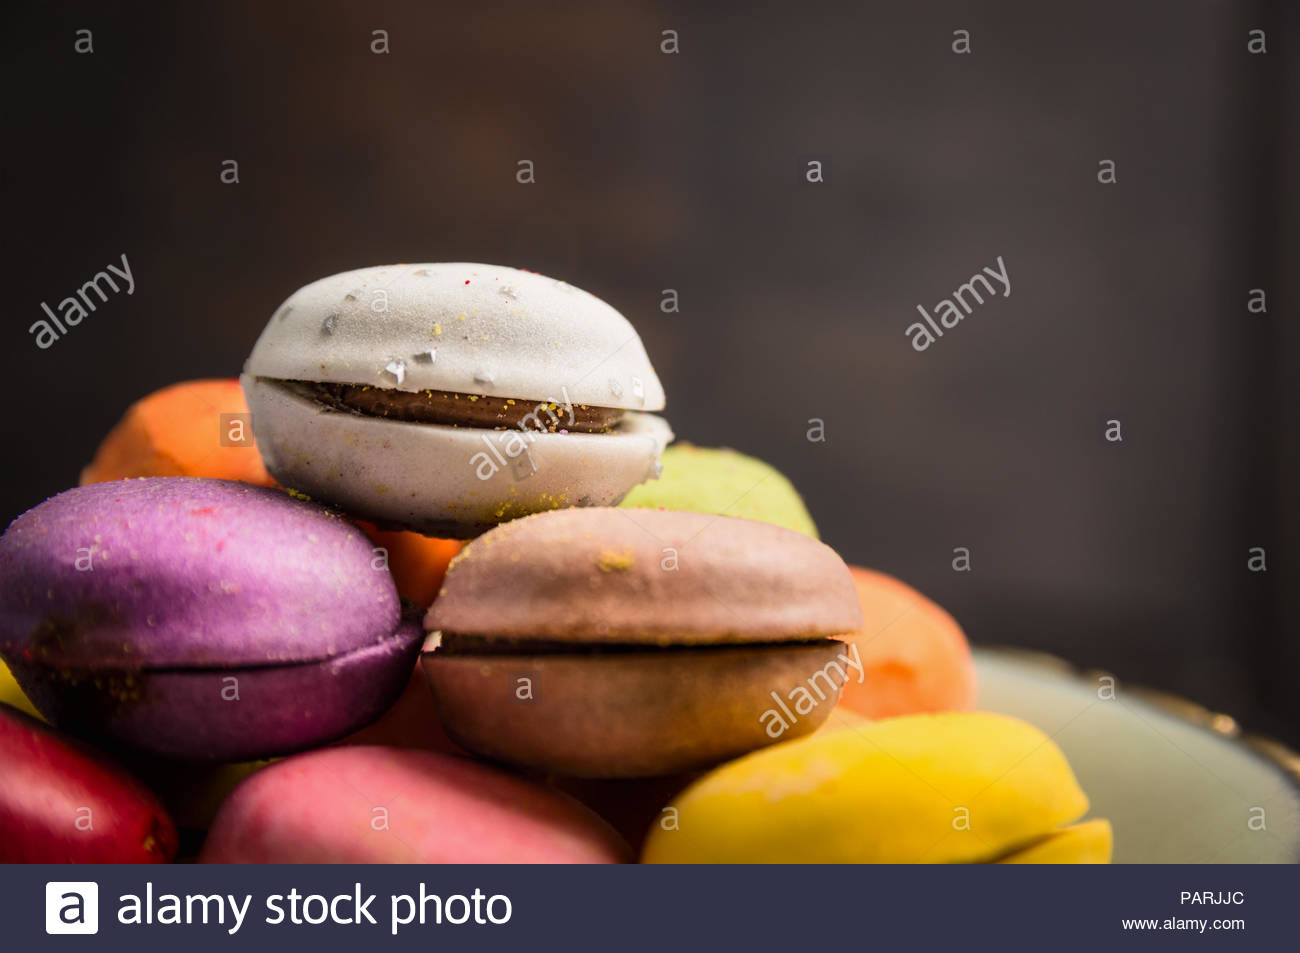 Still life shot of home made macaroons - Stock Image